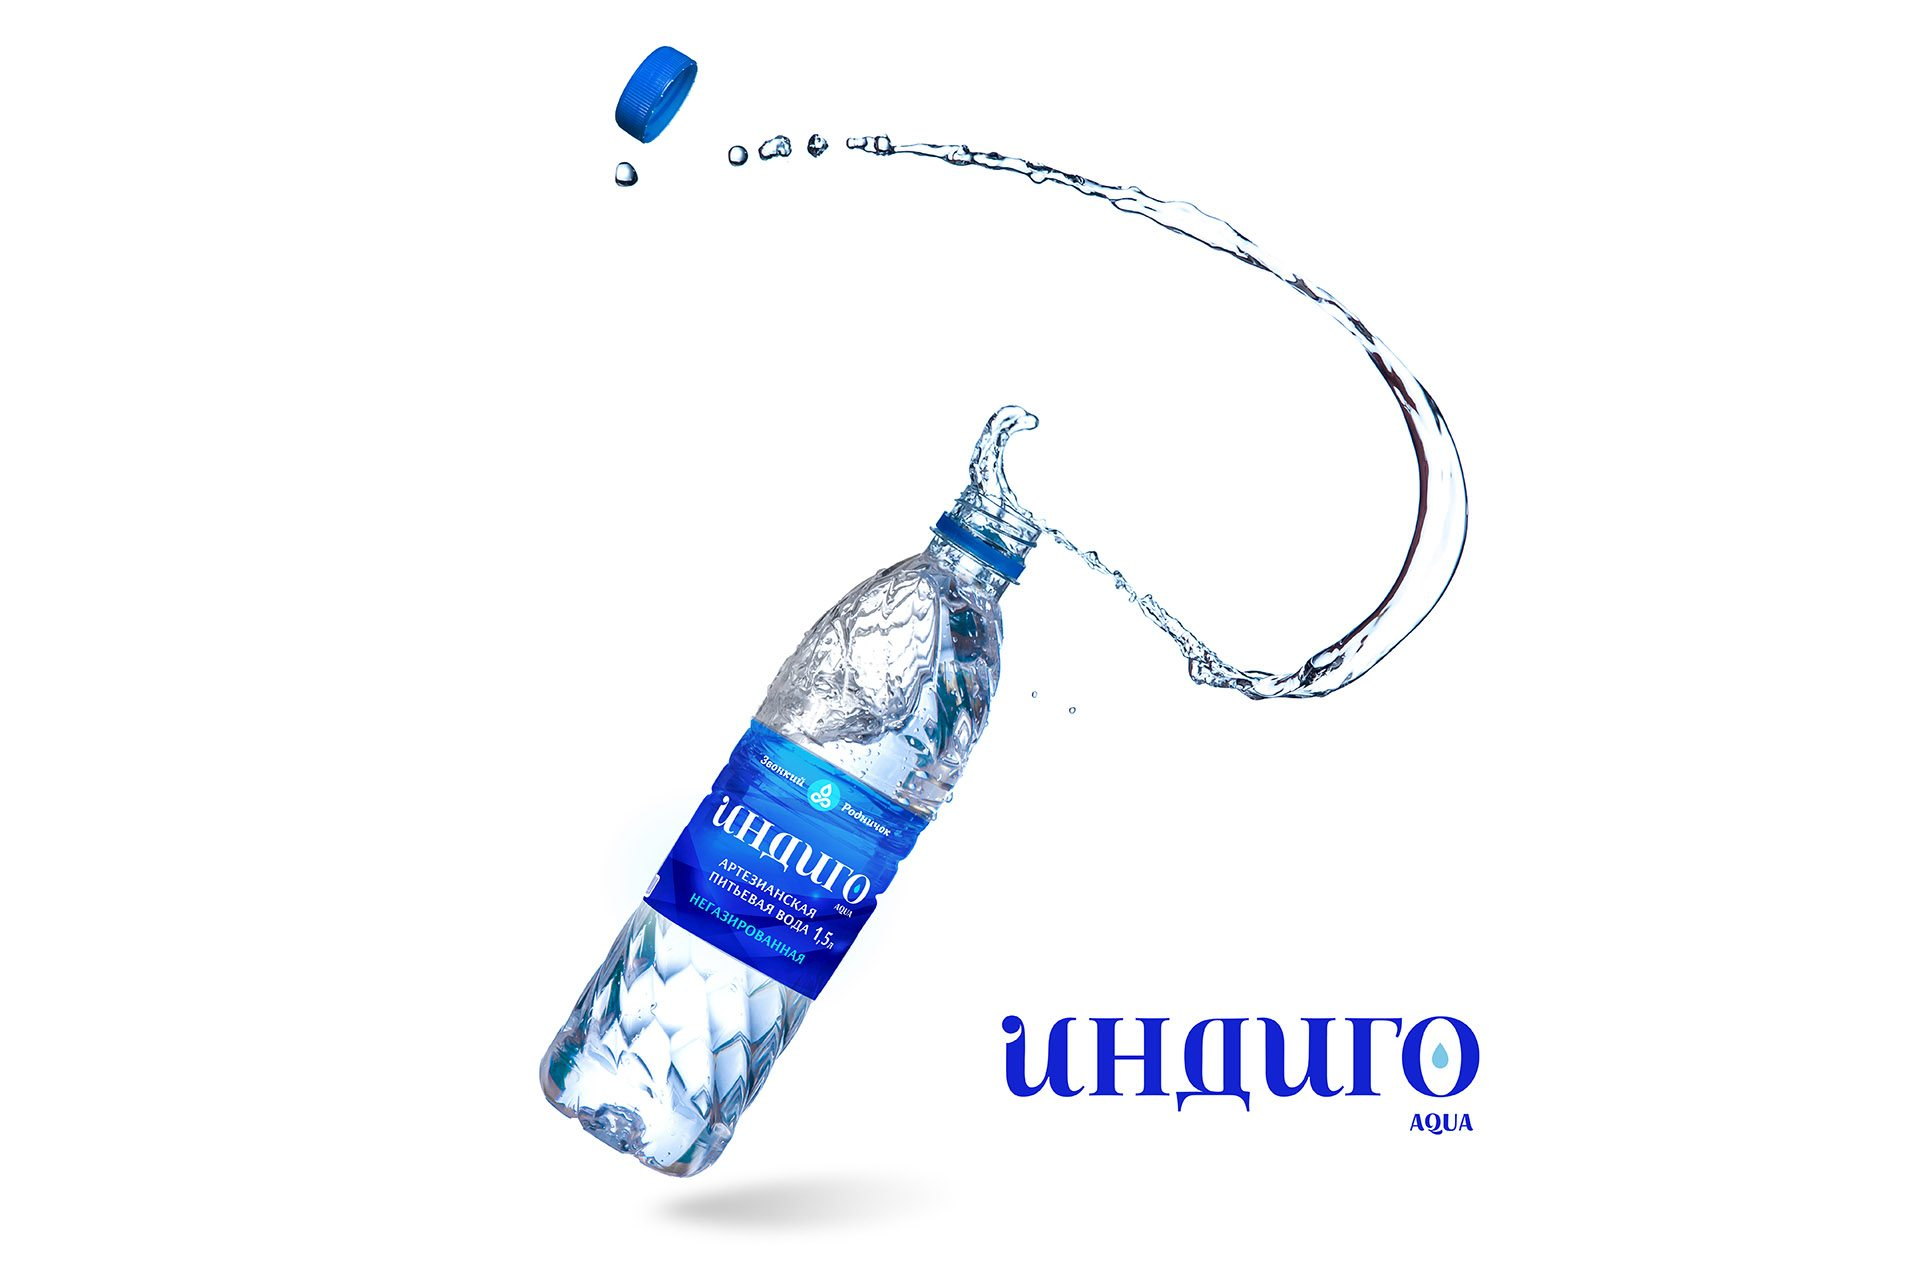 Indigo noncarbonated water